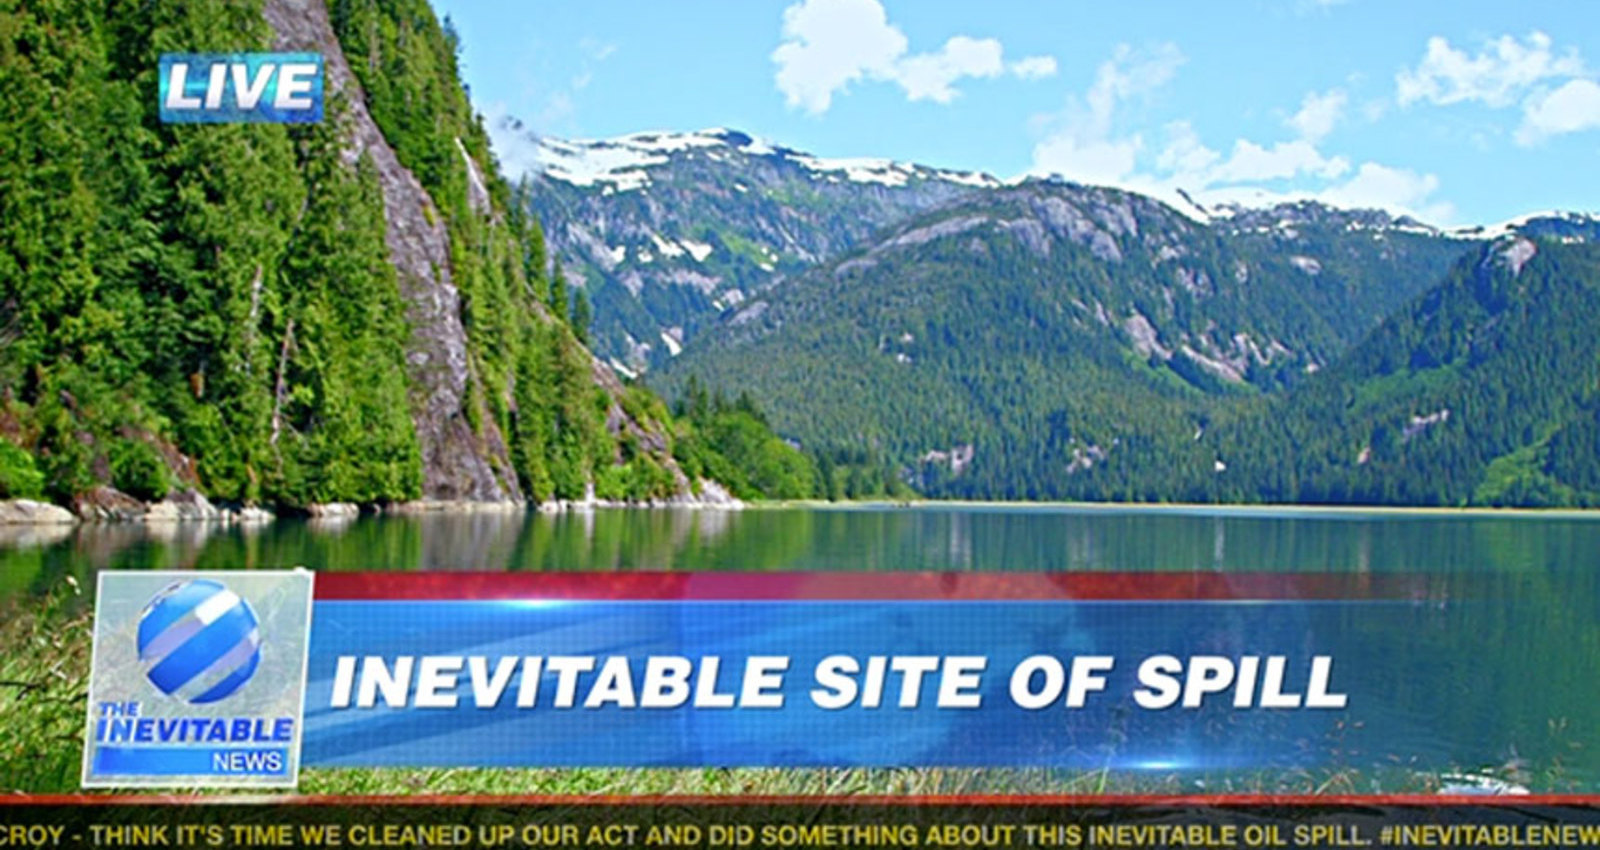 The Inevitable News